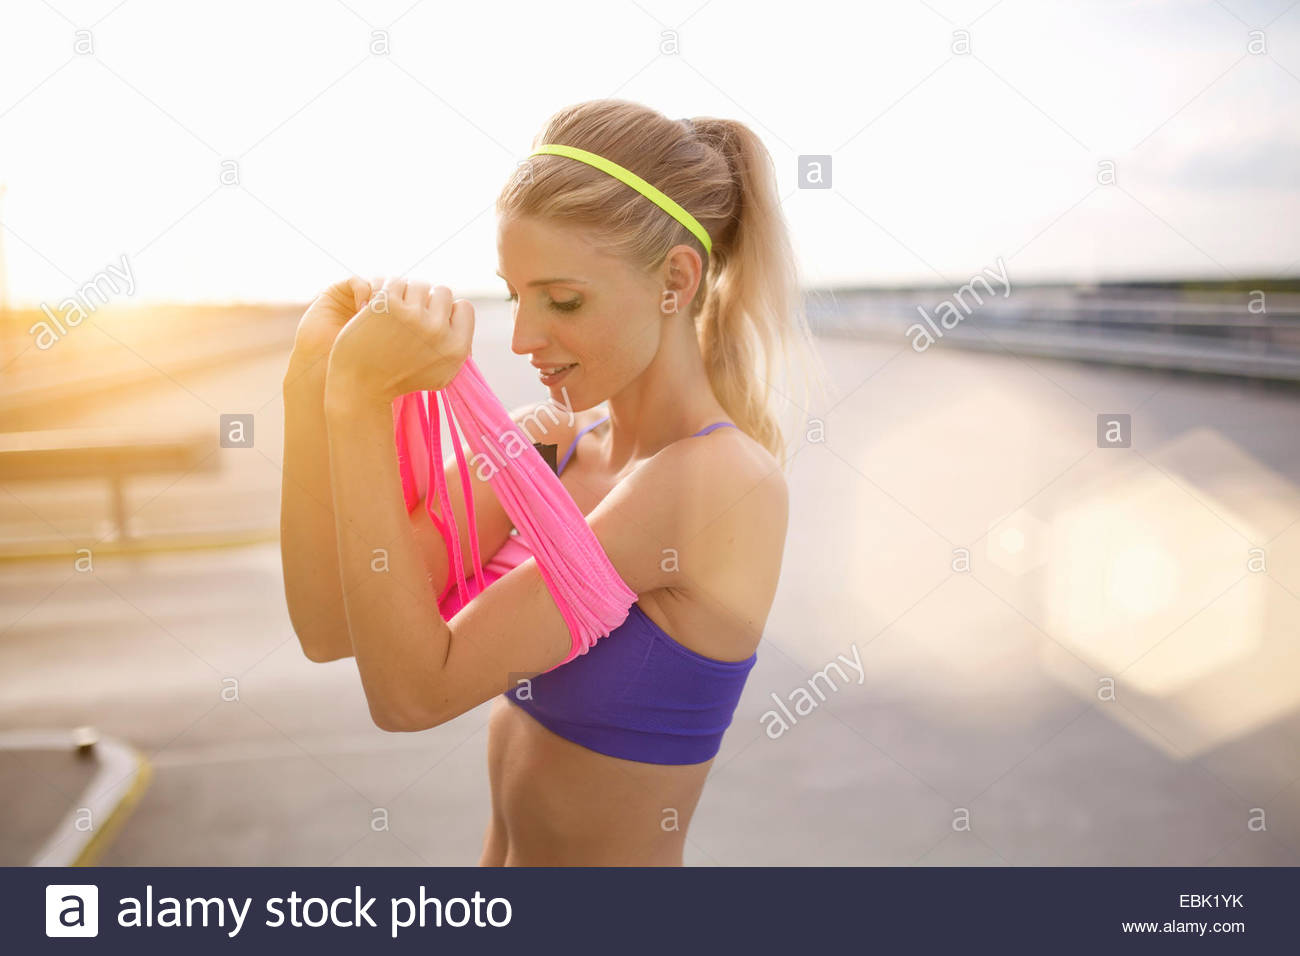 Young woman putting on vest - Stock Image